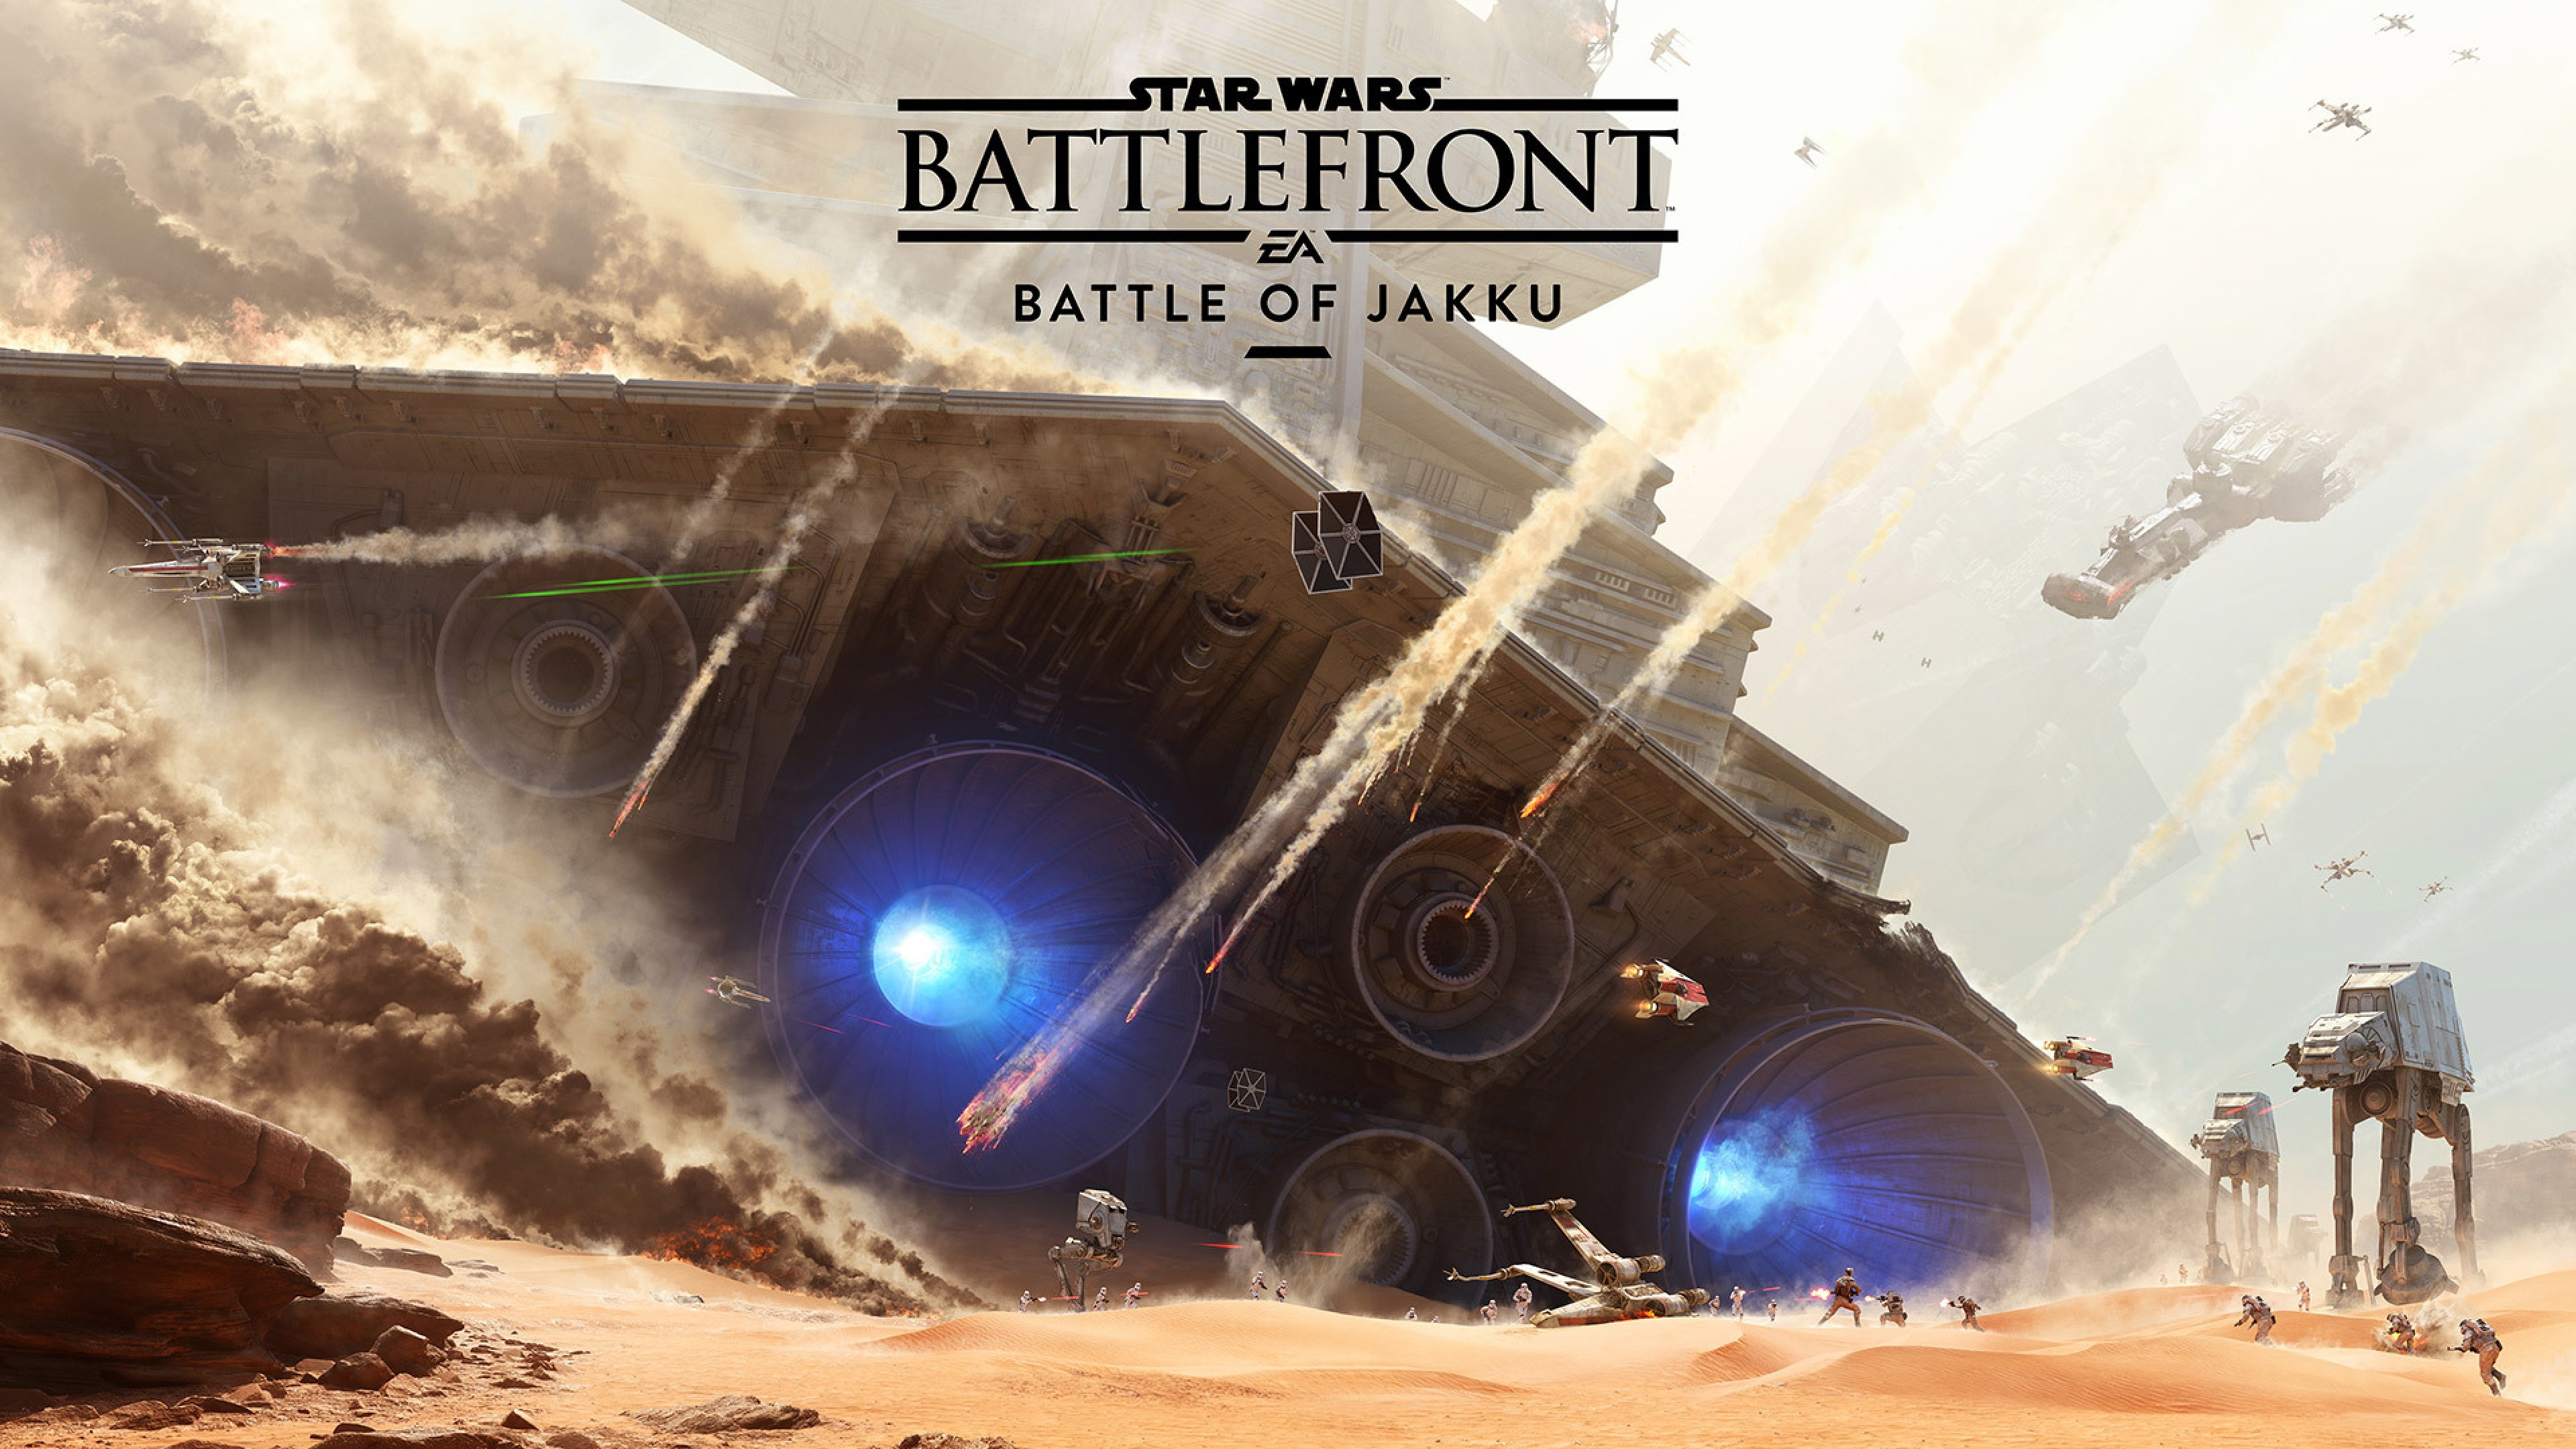 3840x2160  Wallpaper star wars, battlefront, battle of jakku